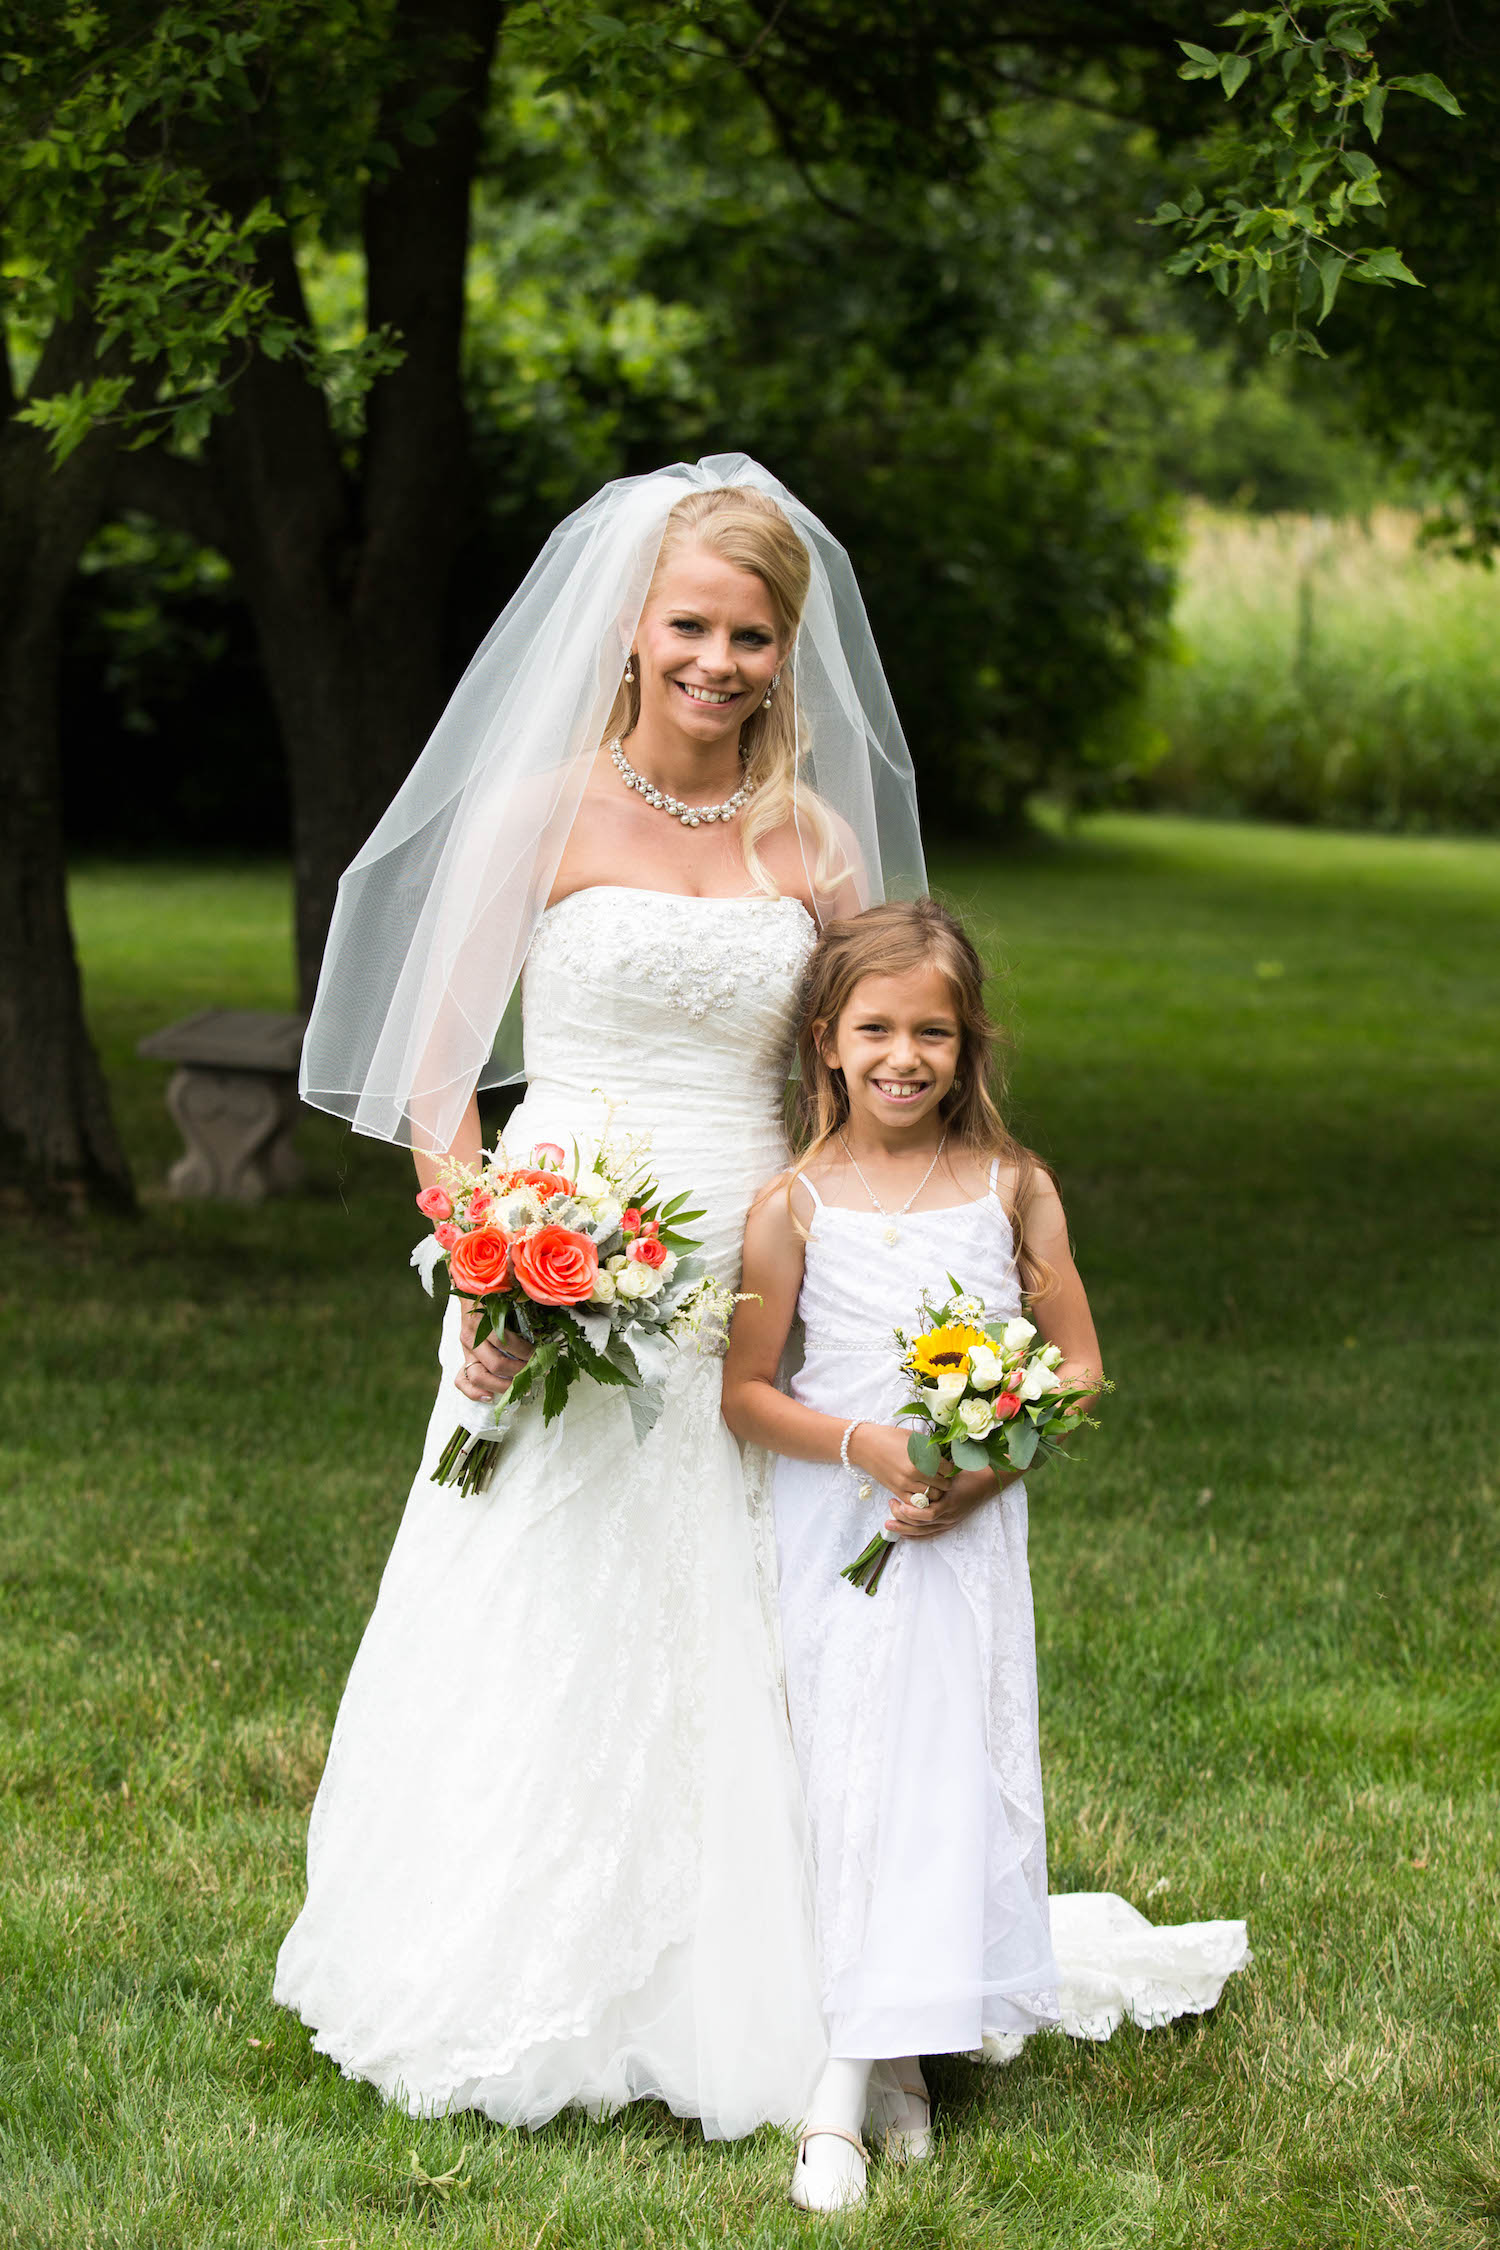 Cindyrellas Garden, outdoor lake ceremony in Minnesota, flower girl in white